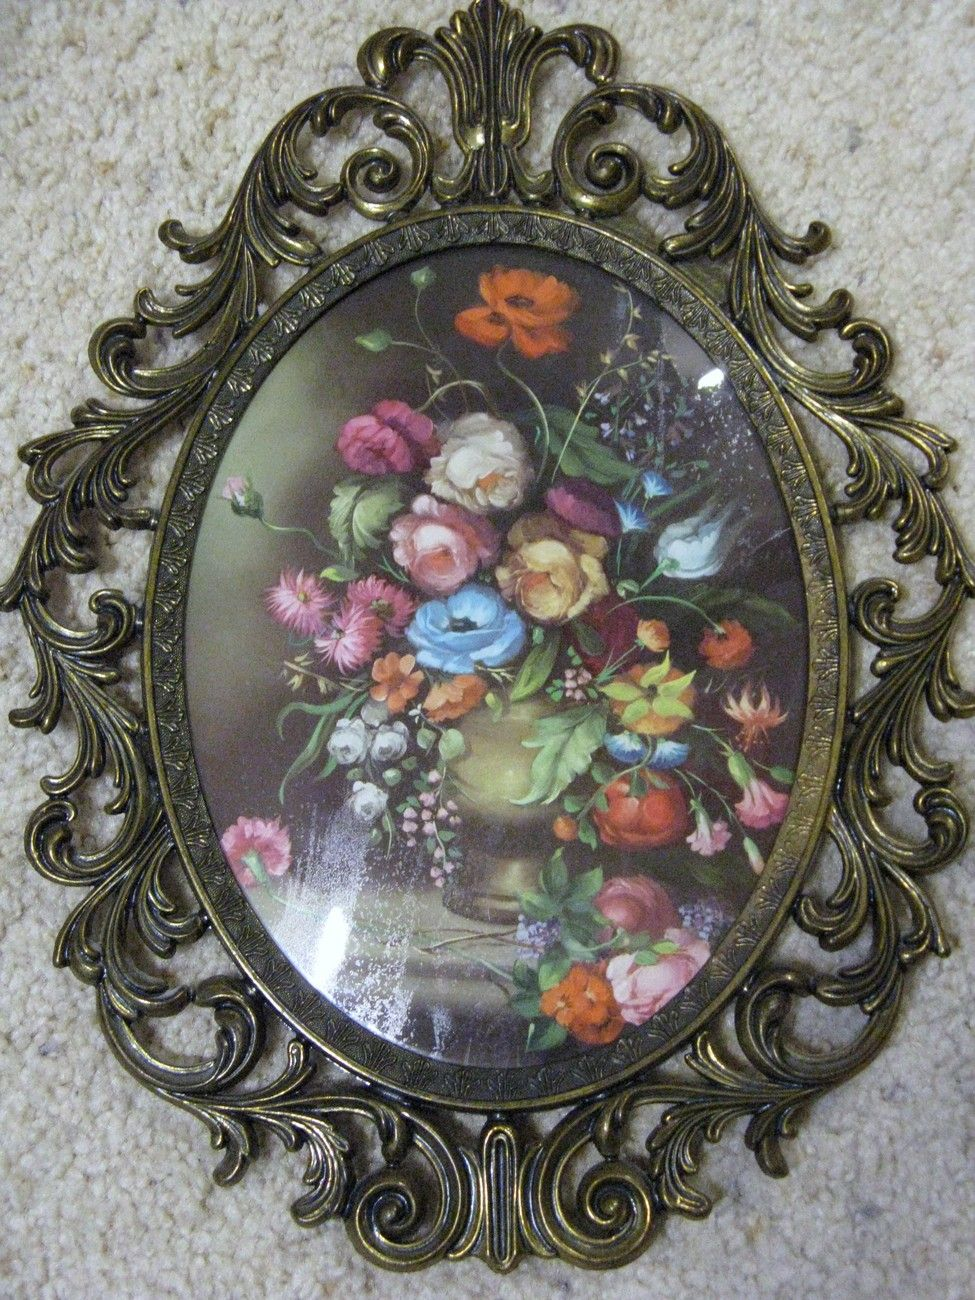 Vintage Glass Picture Frames VINTAGE OVAL DOMED GLASS